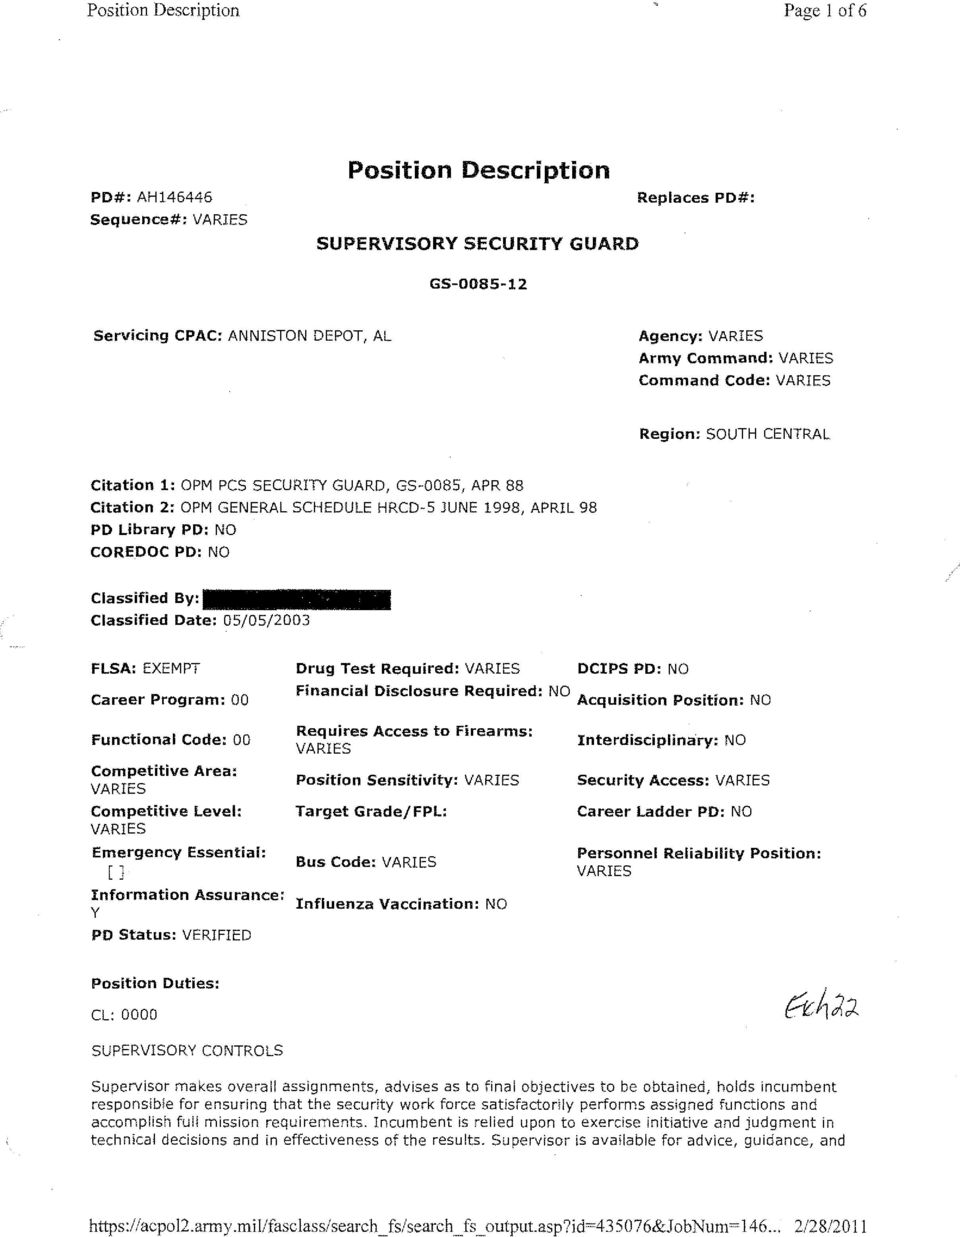 Classified By: Classified Date: 05/05/2003 FlSA: EXEMPT Drug Test Required: VARIES OCIPS PO: NO Career Program: 00 Financial Disclosure Required: NO Acquisition Position: NO Functional Code: 00